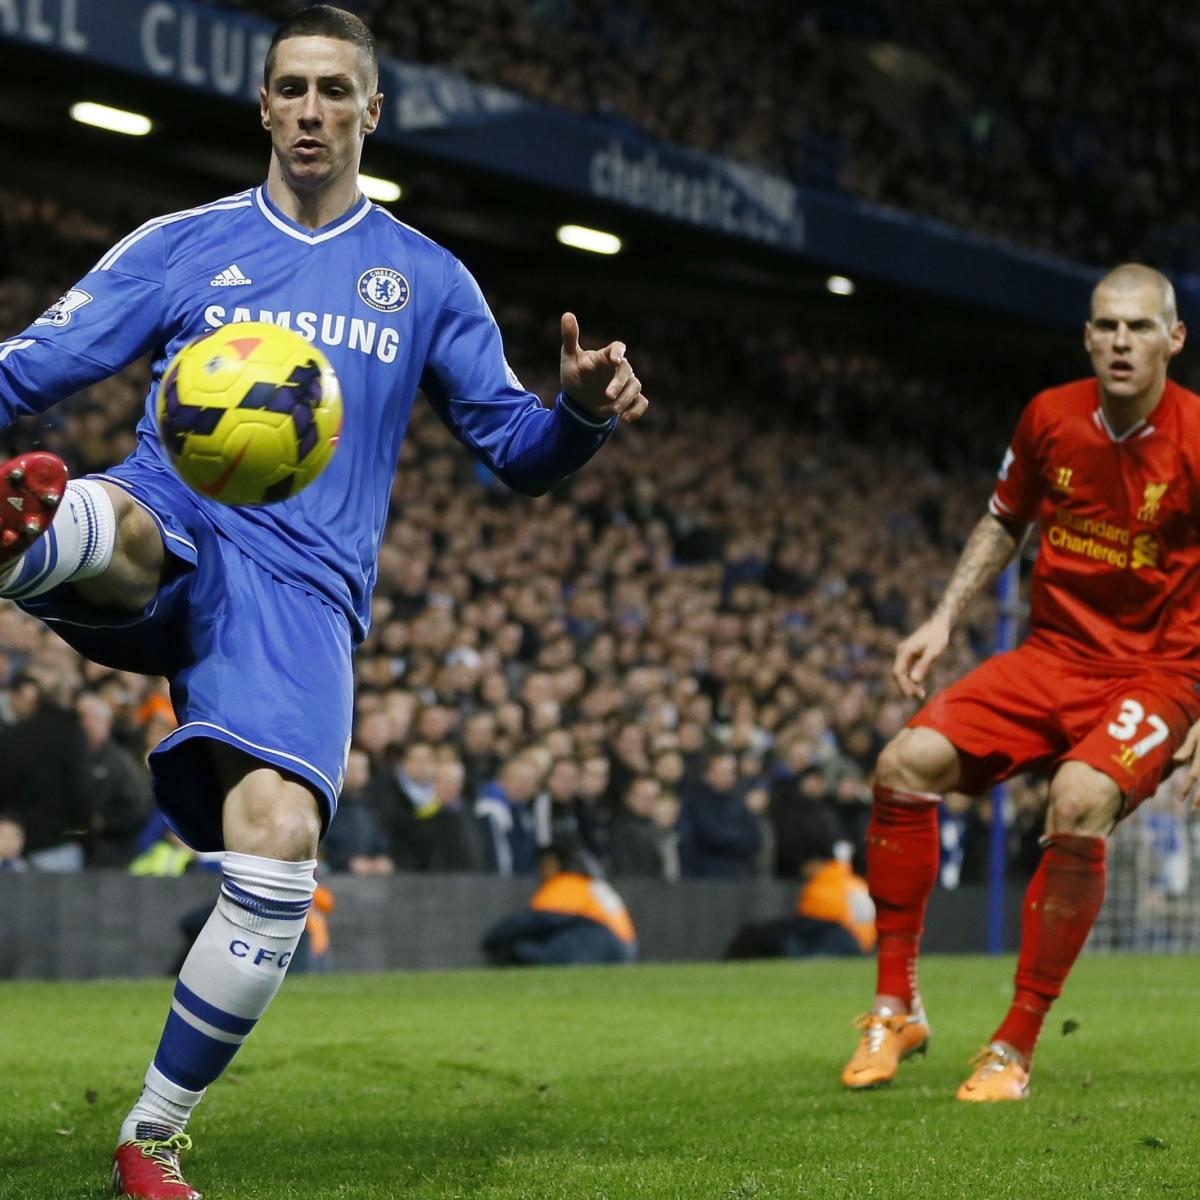 Liverpool Vs Chelsea: Liverpool Vs. Chelsea Betting Odds, Match Preview, EPL